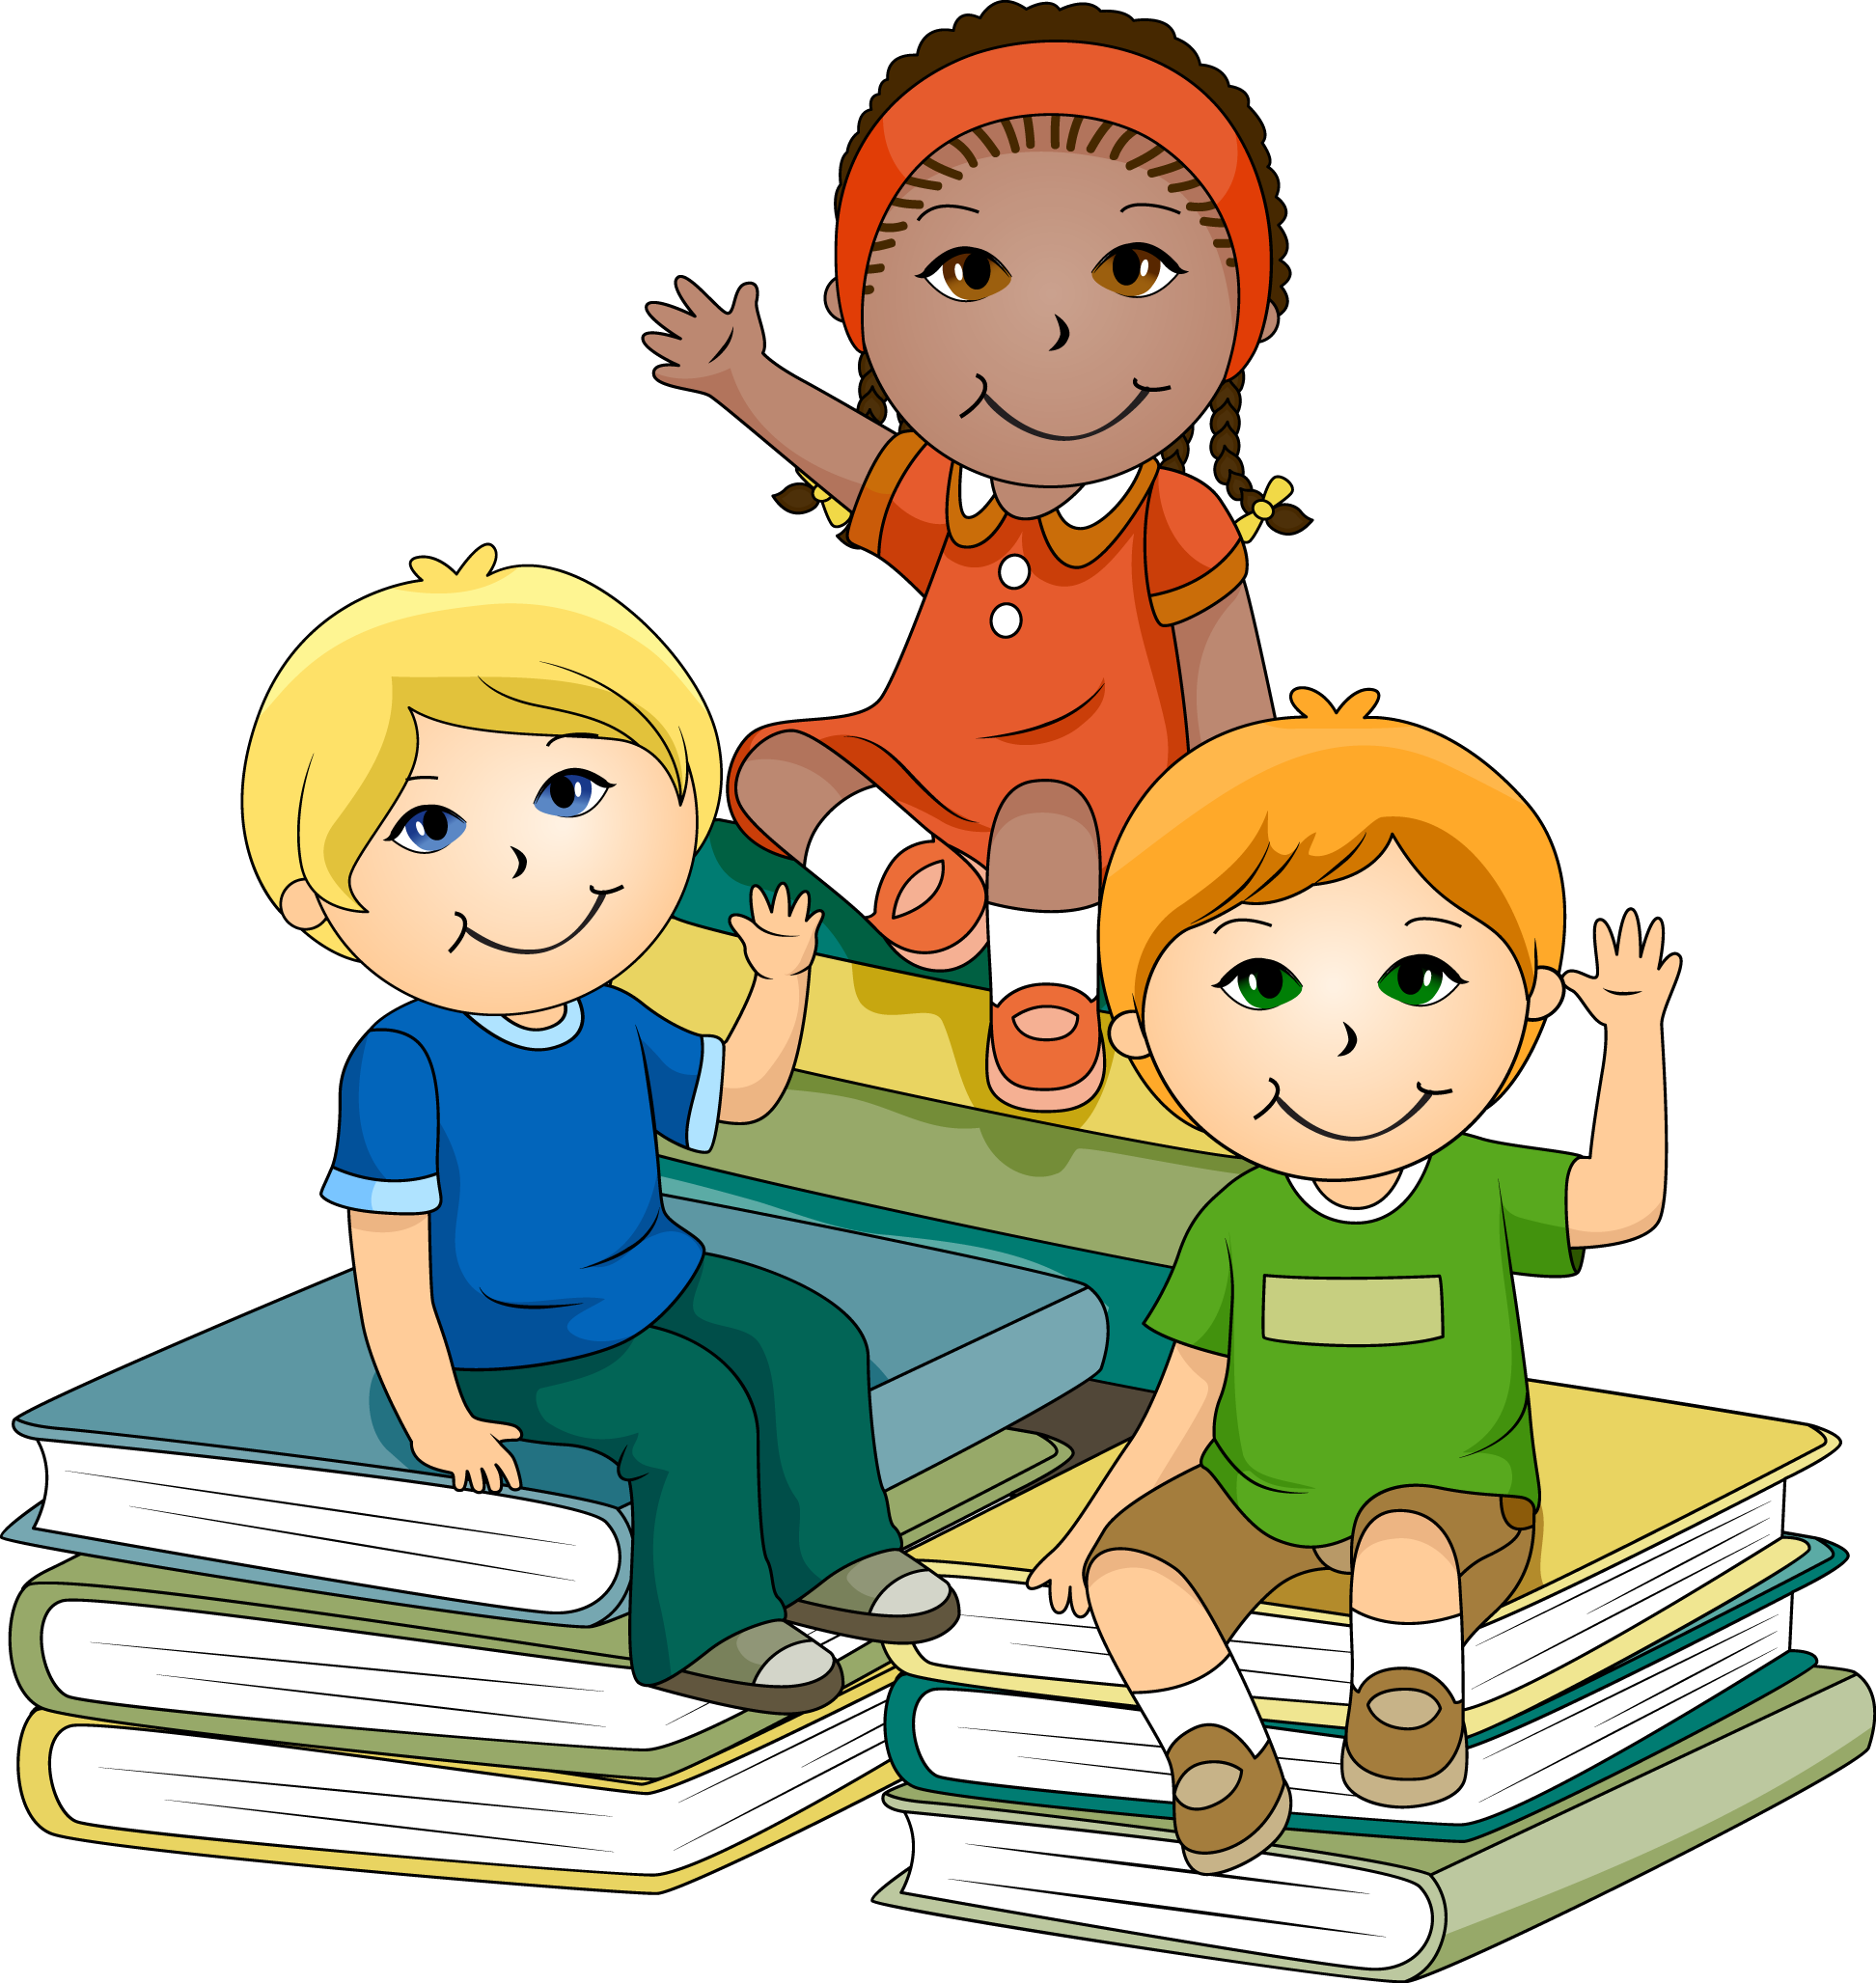 Free learning cliparts download. Educational vector child education royalty free stock